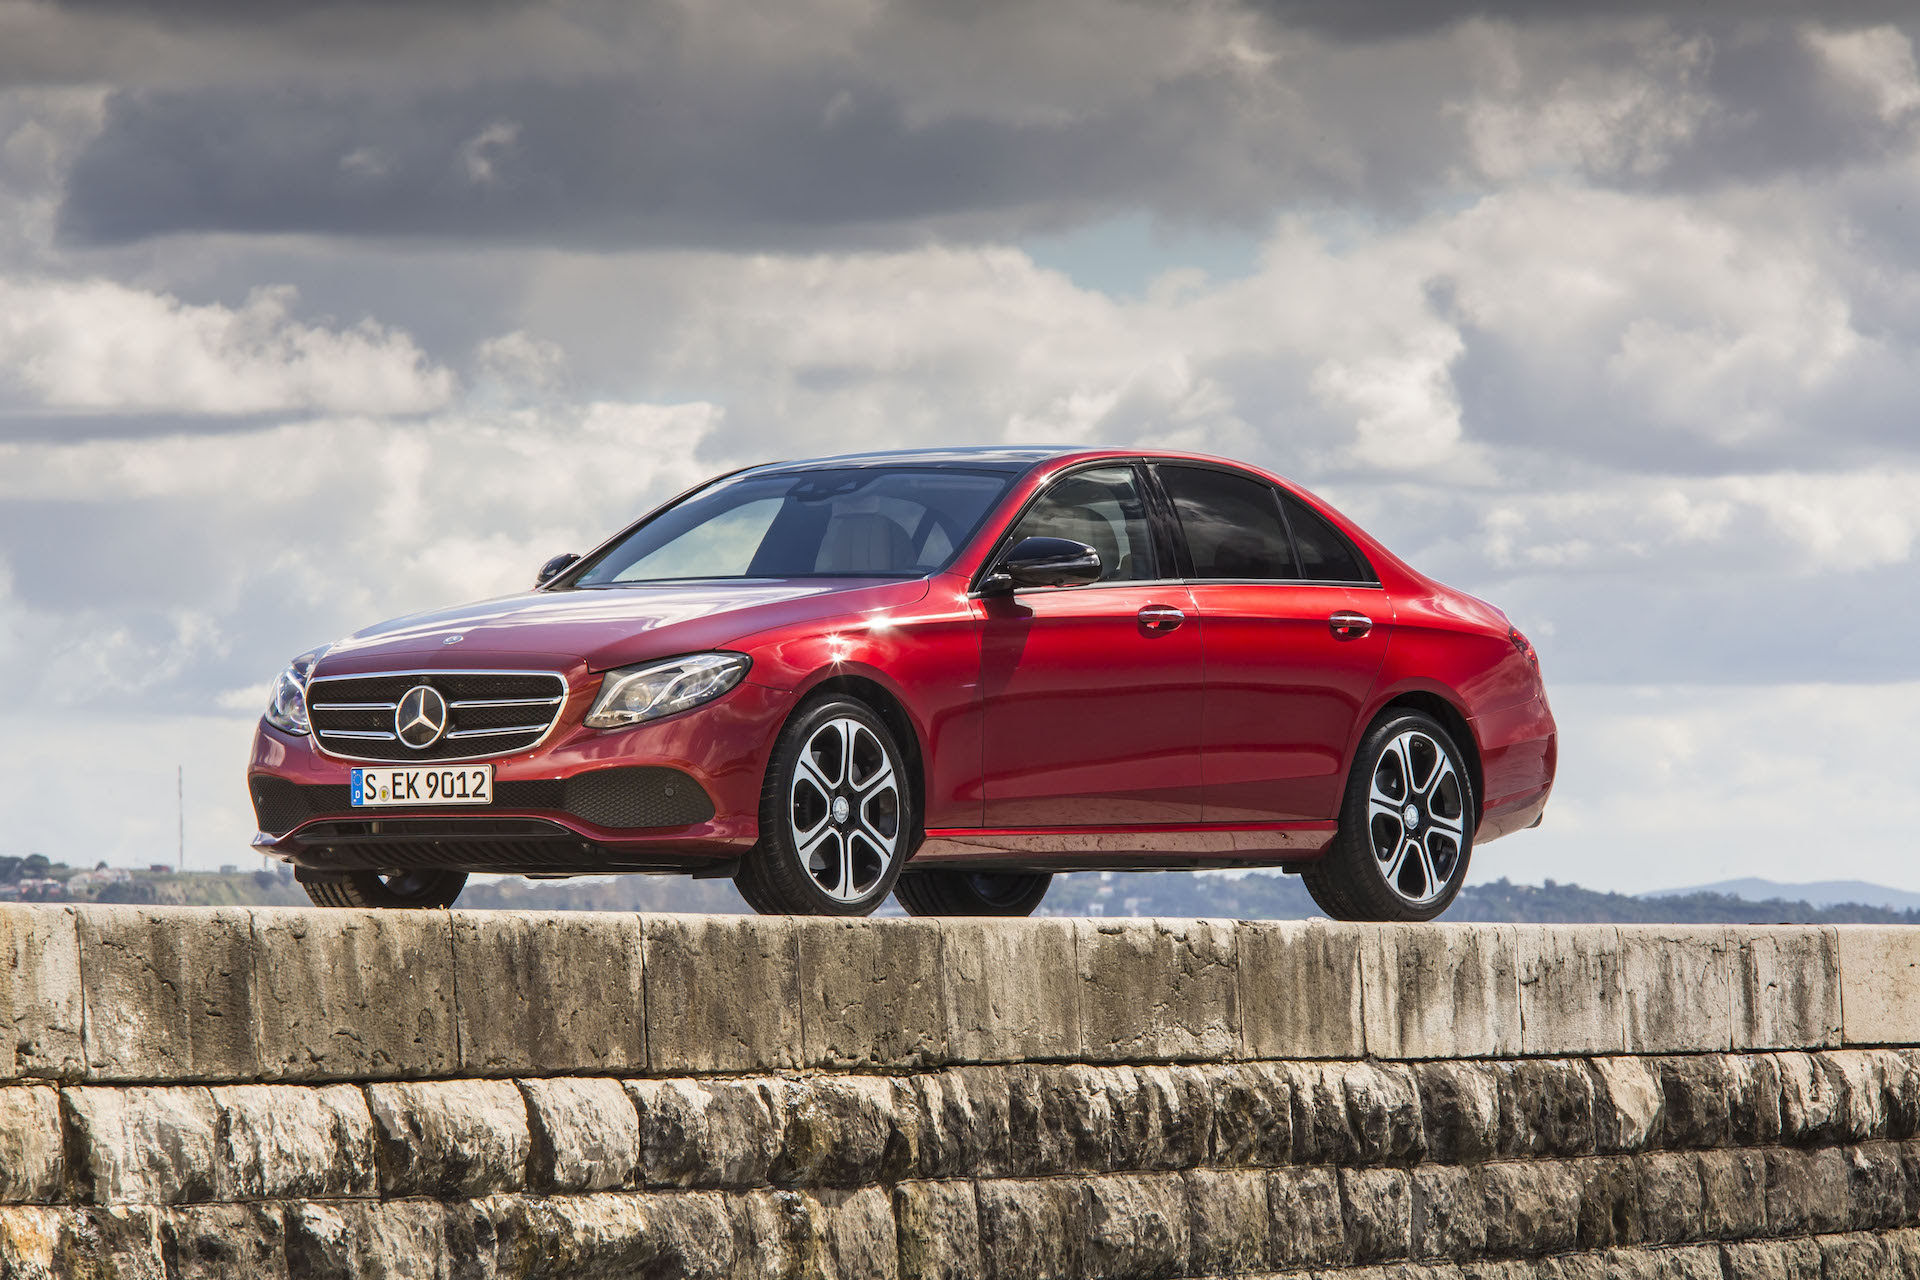 New Mercedes-Benz E-Class priced lower than outgoing model